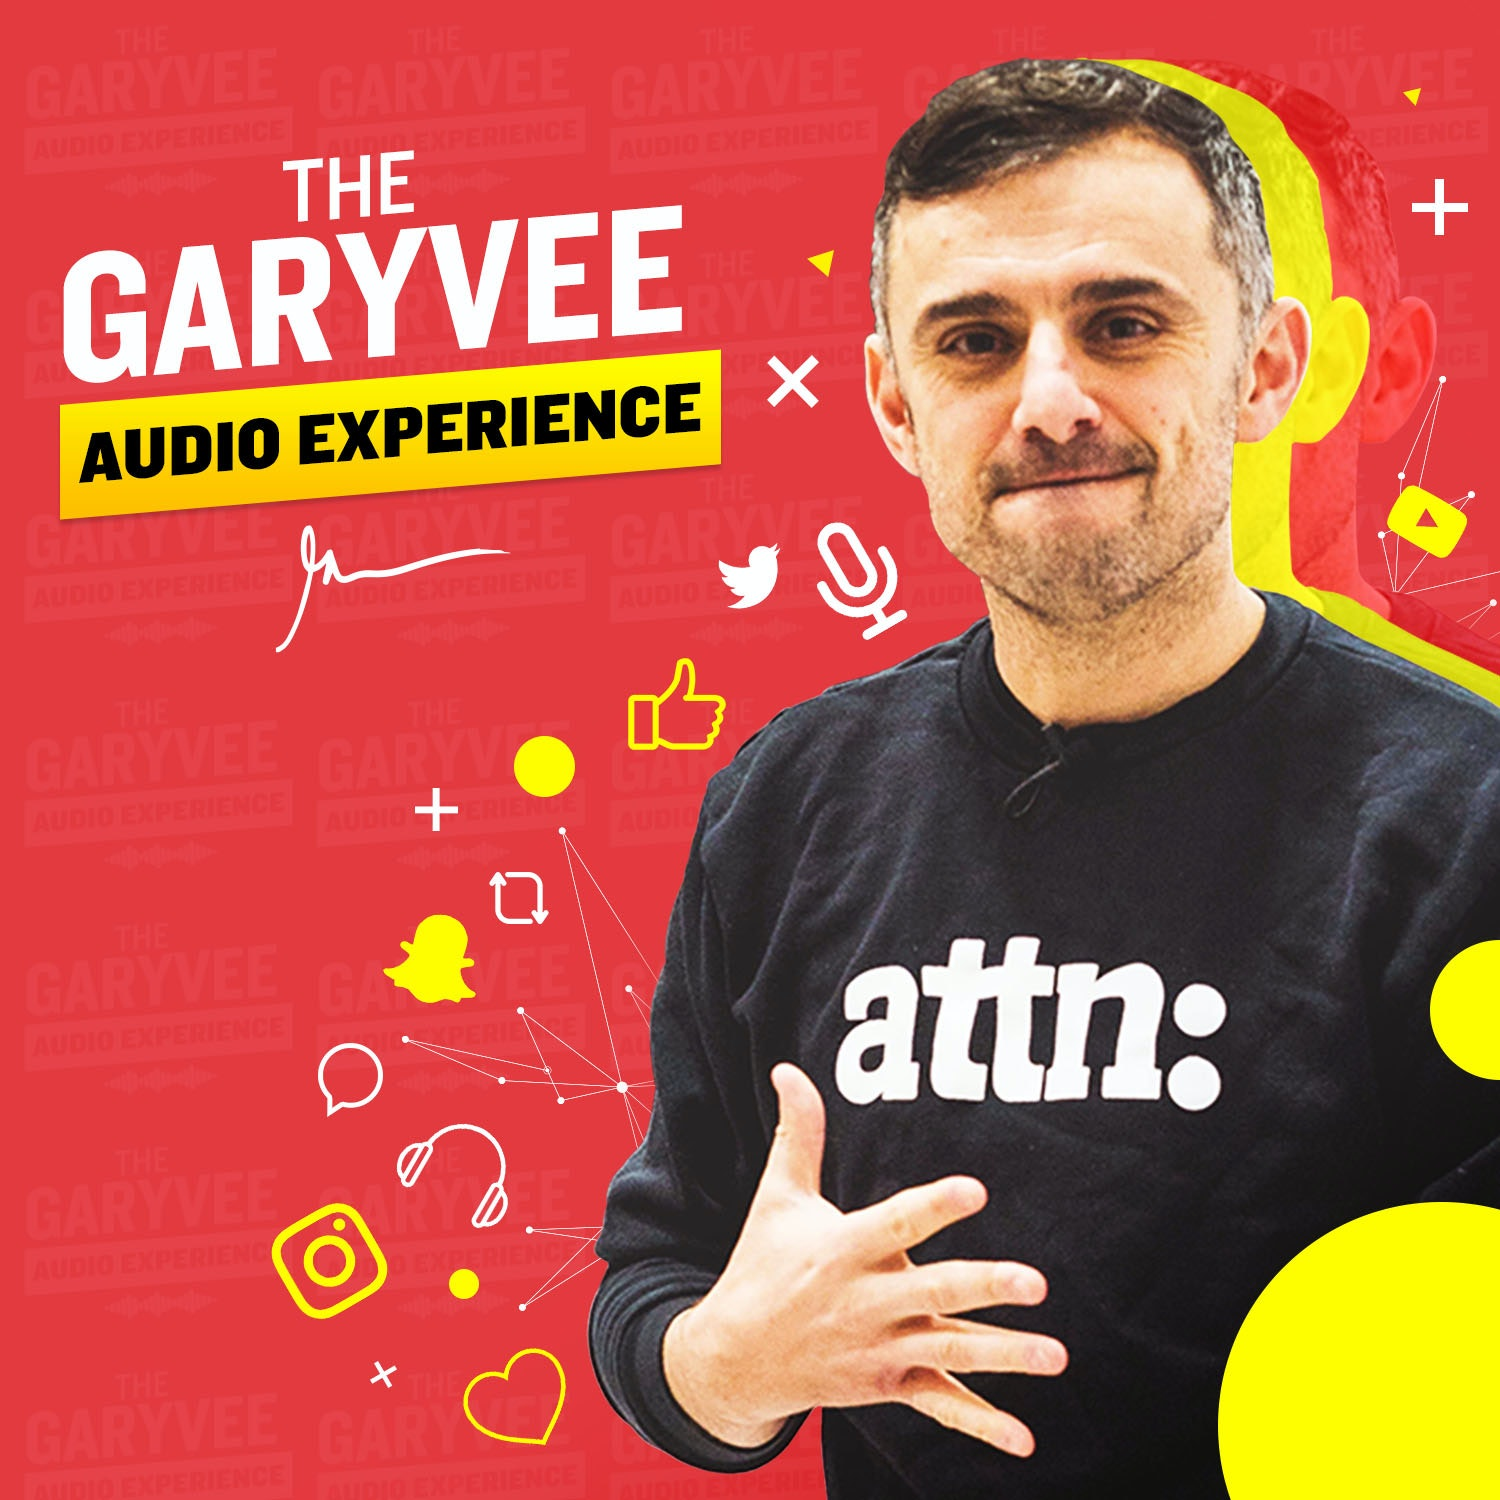 Motivational Podcasts: The Garyvee Audio Experience